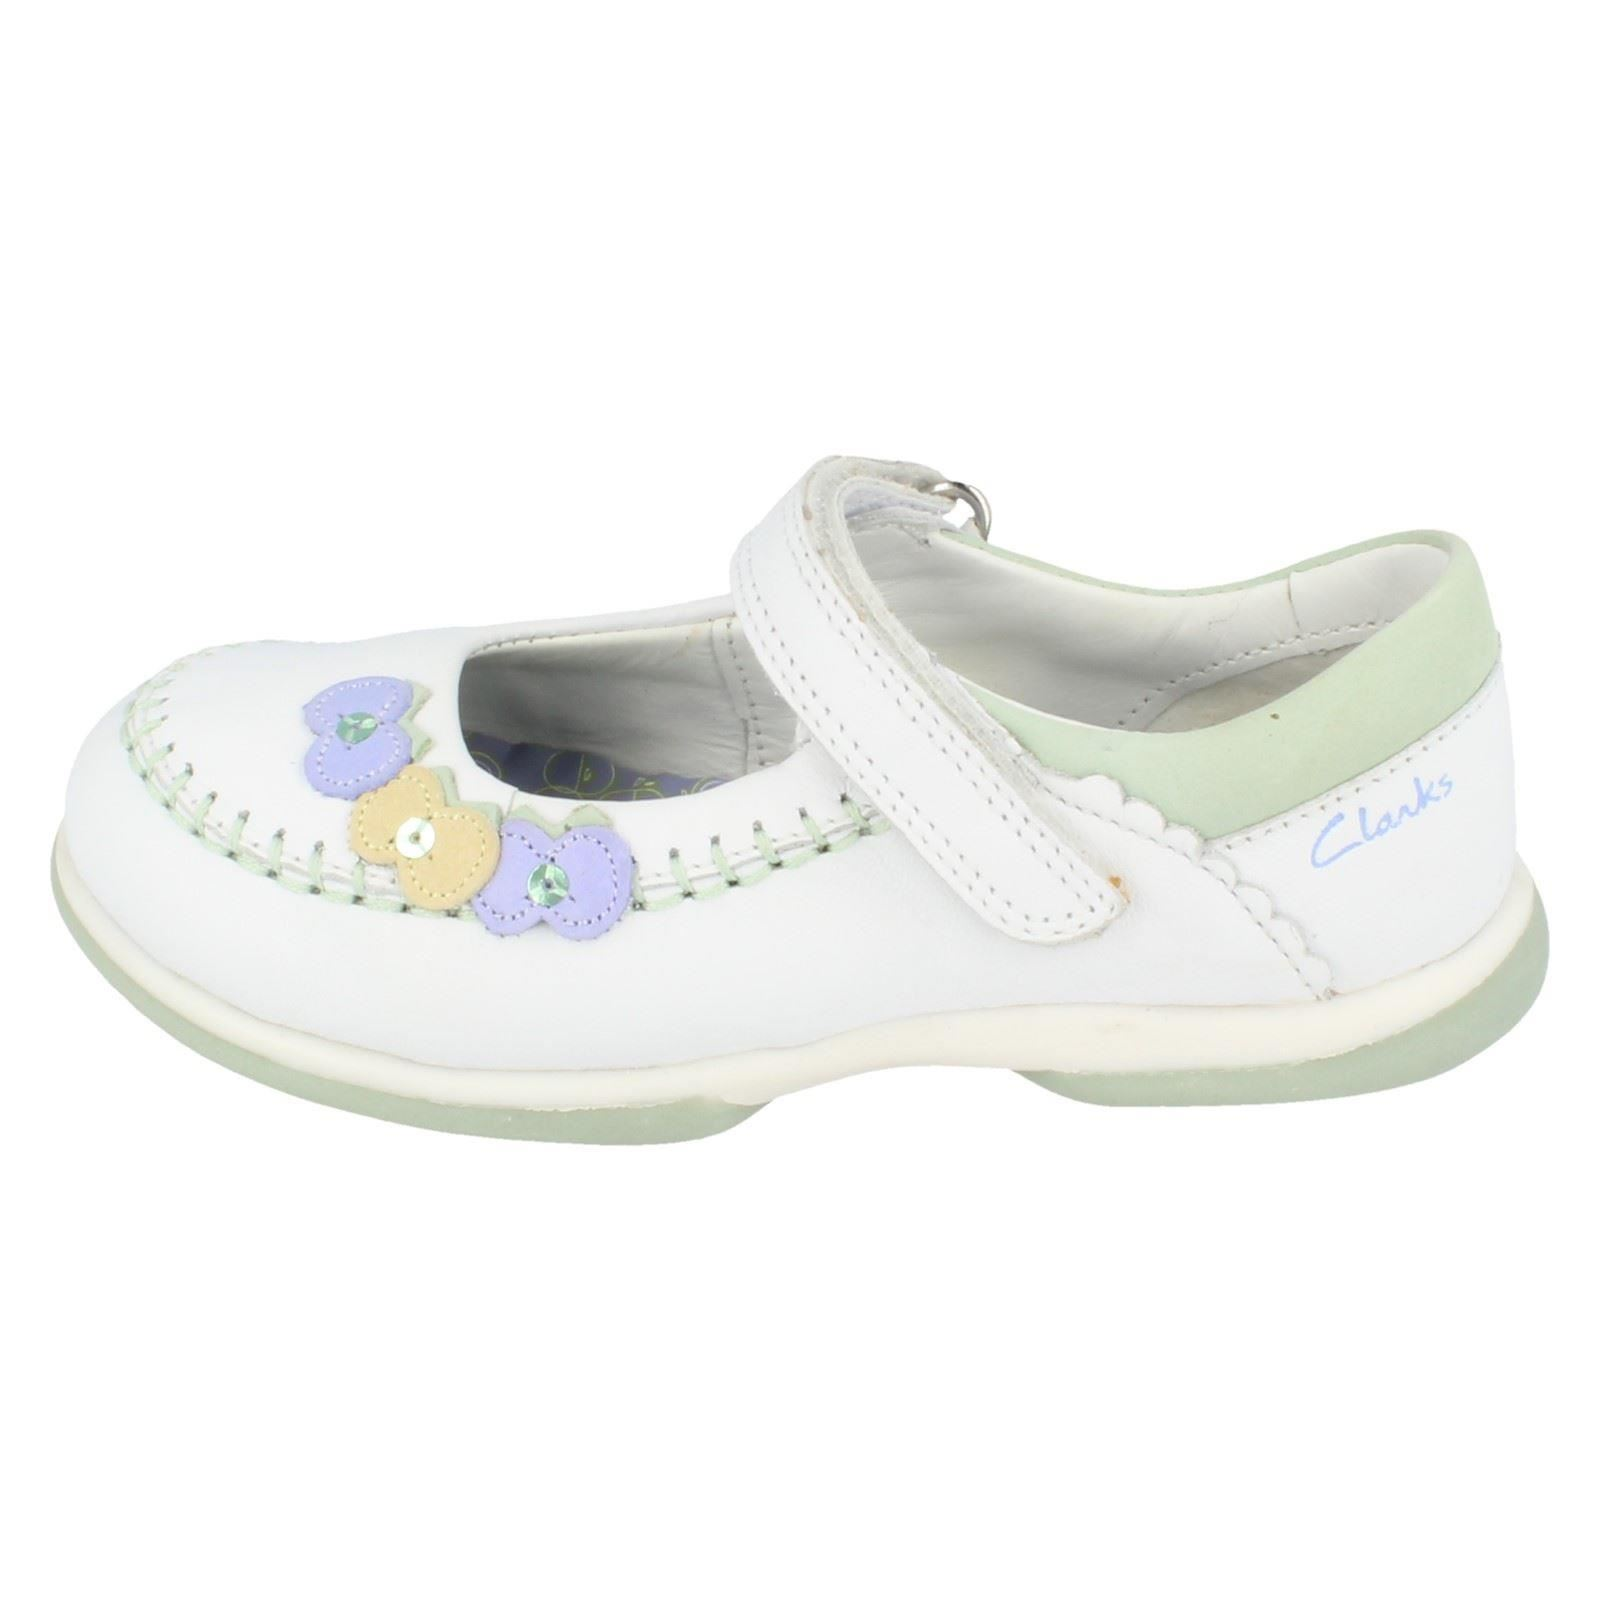 Girls Clarks Shoes Appleshine ~ N